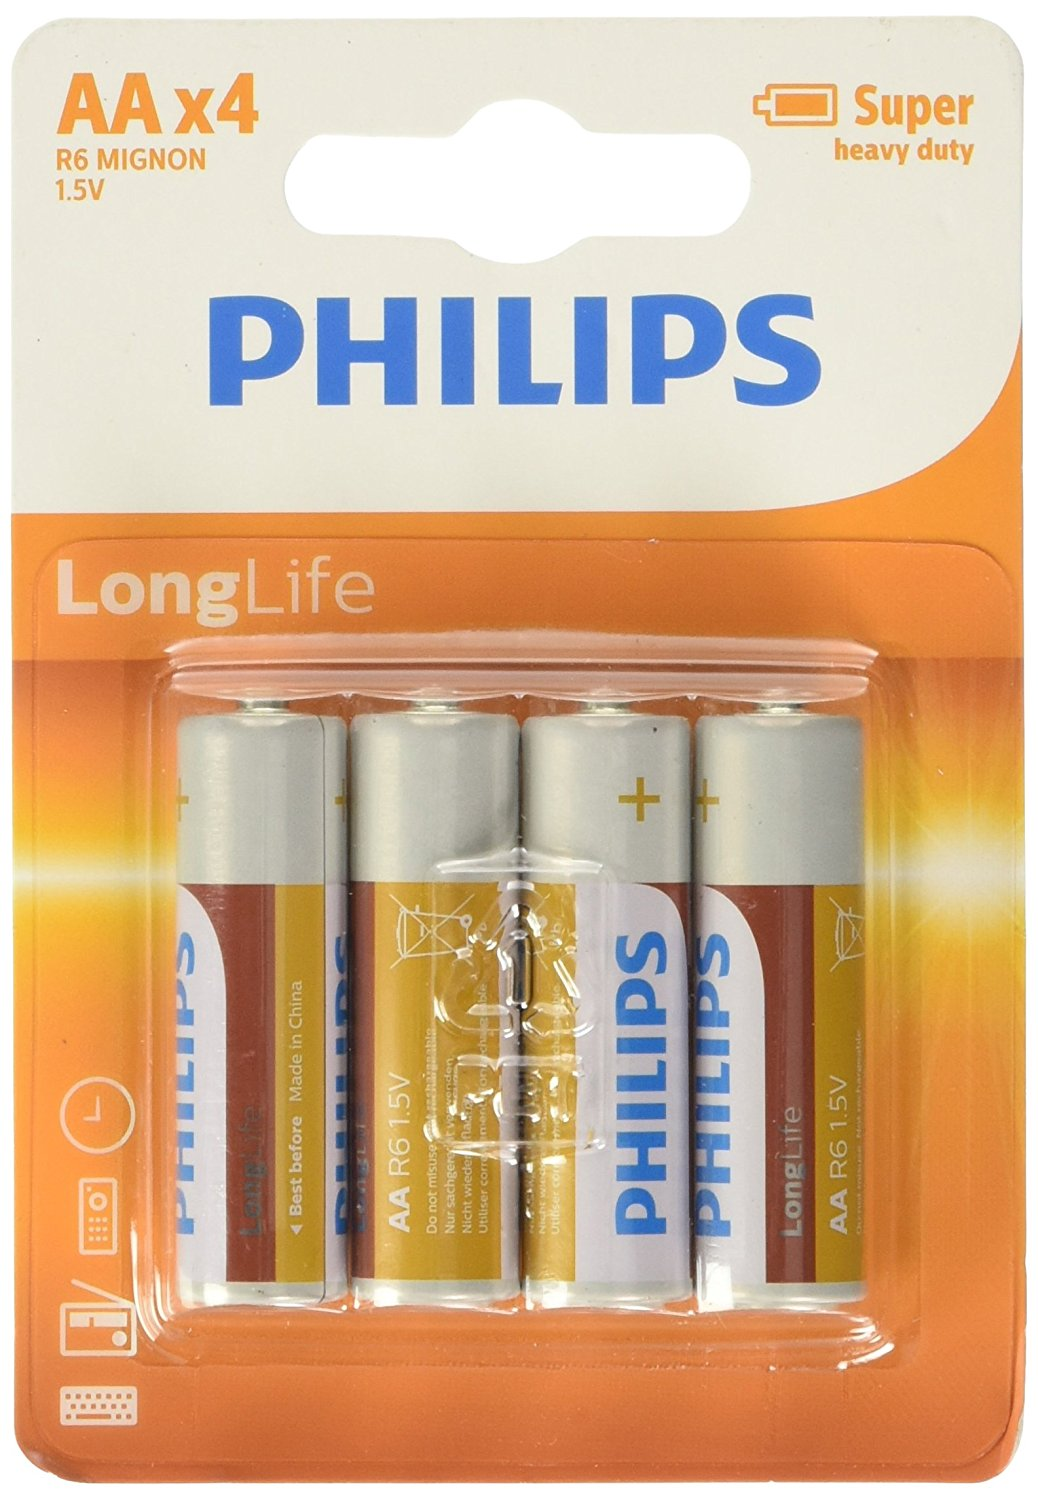 BATTERIA philips BLISTER 4 PZ. STILO - AA X 4